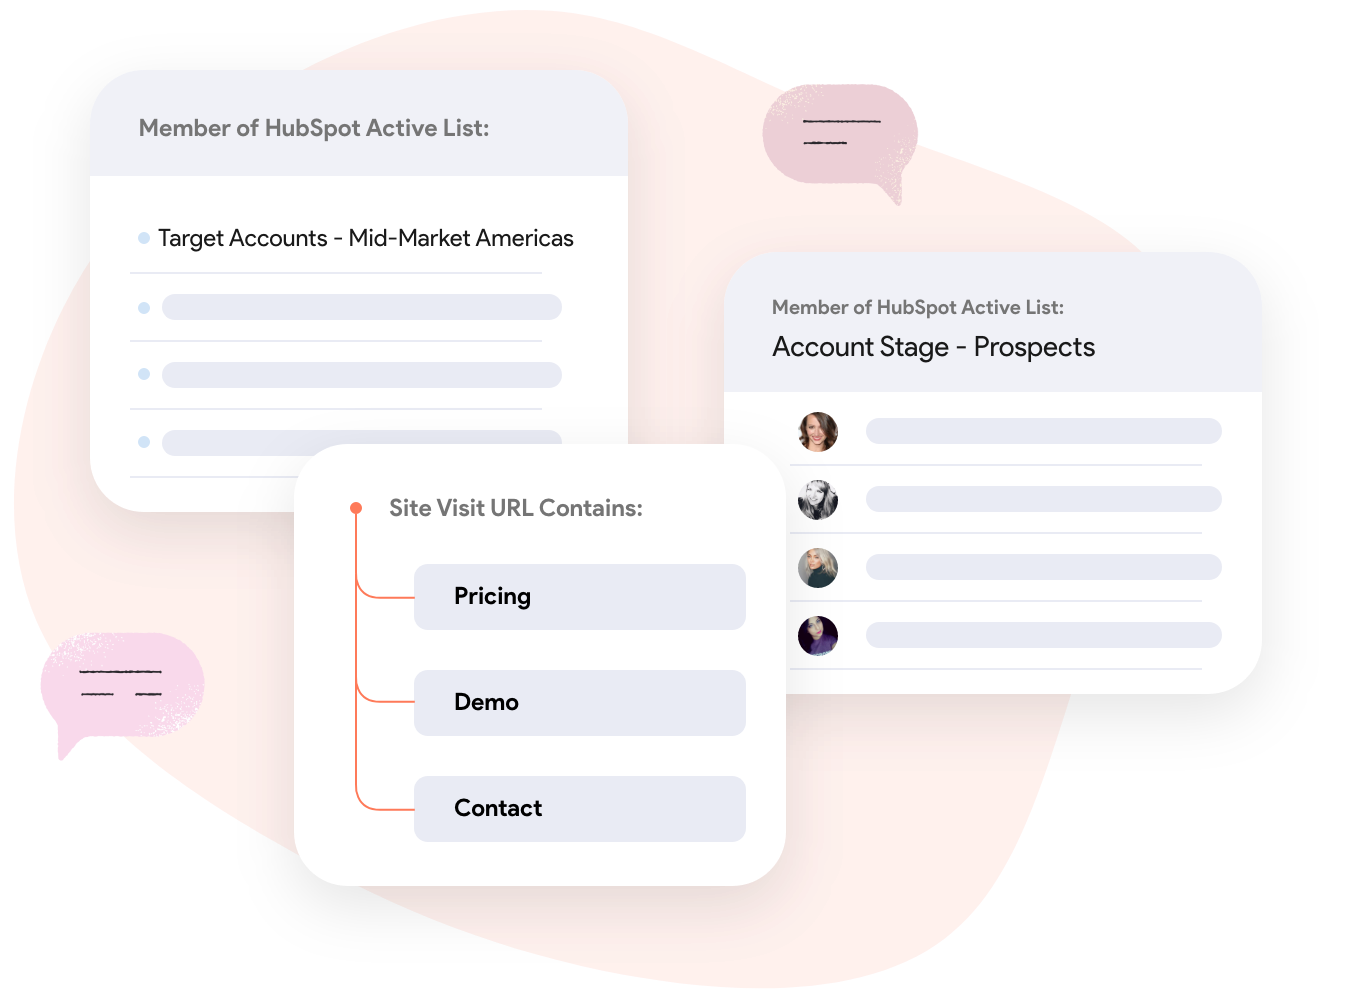 Shows the bi-way integration between your chat platform and HubSpot. With active lists based on your target accounts, visit URLs and Account stage.